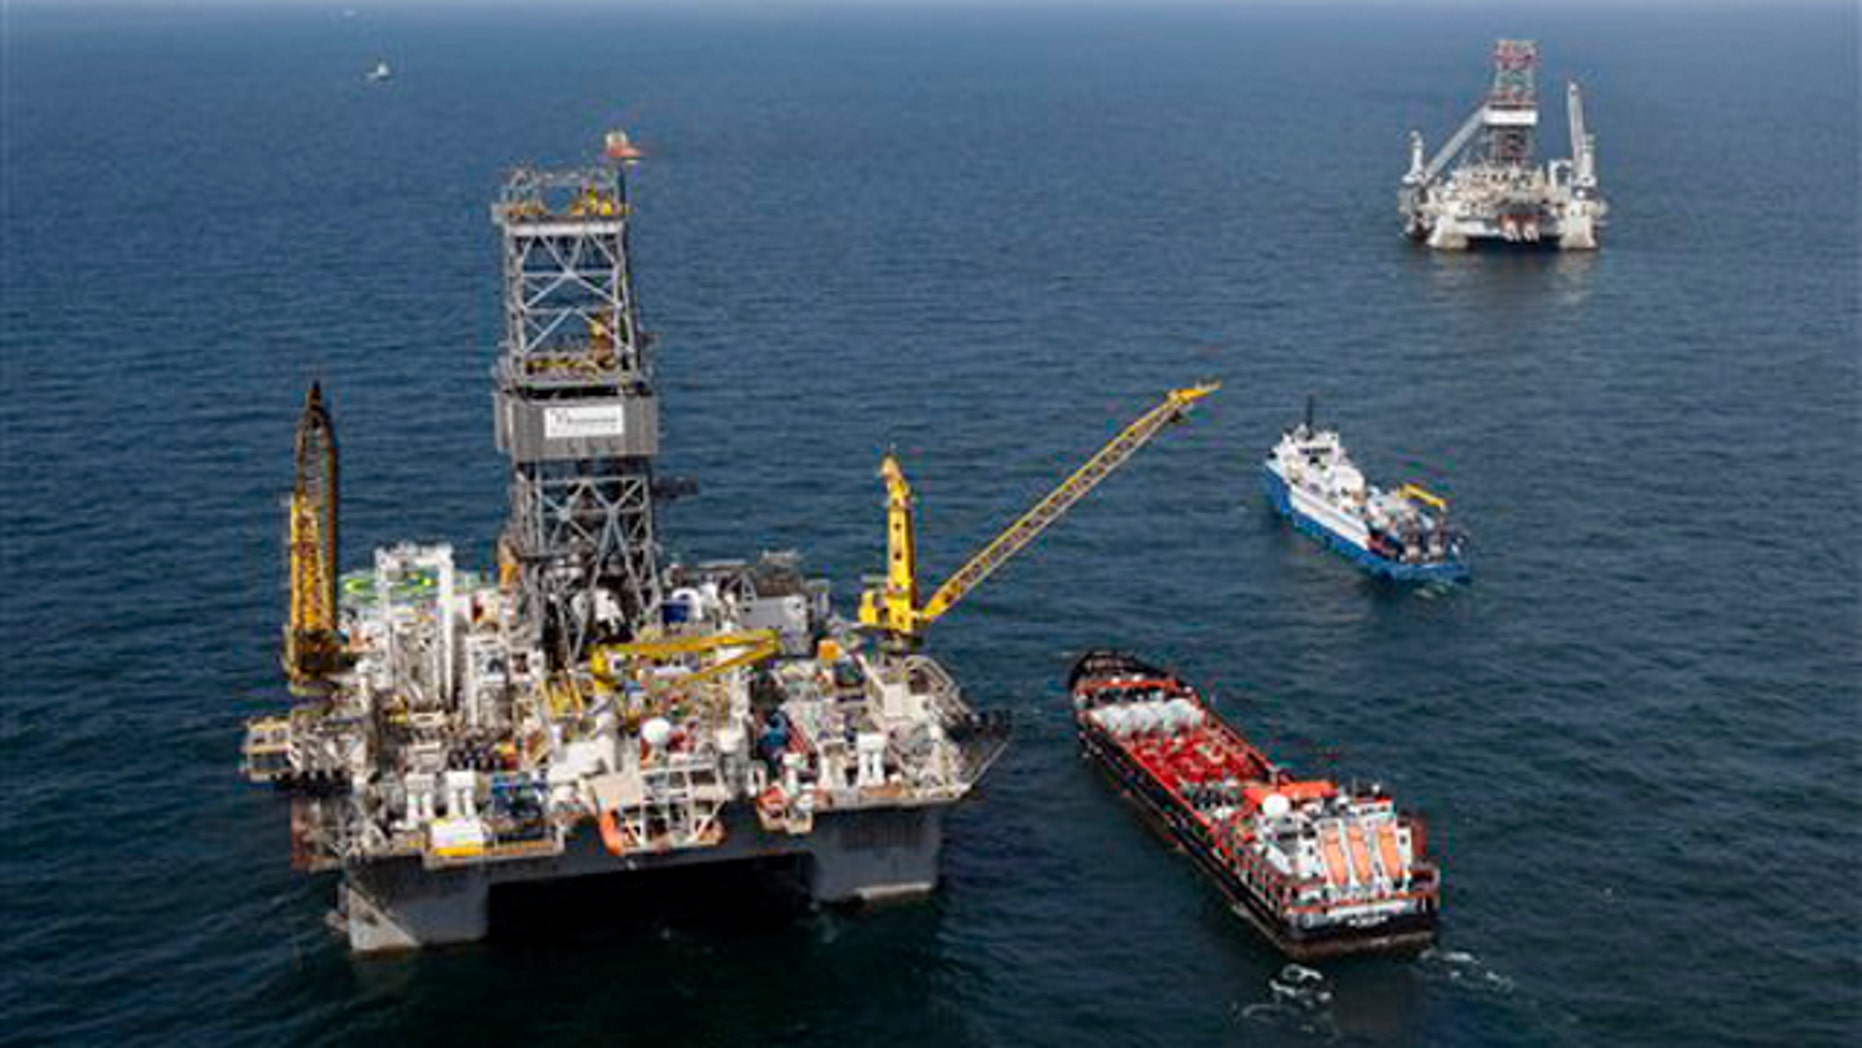 The Transocean Development Driller III, left, and the Transocean Development Driller II, right, the rigs drilling relief wells, are seen on the Gulf of Mexico near the coast of Louisiana Aug. 14. (AP Photo)